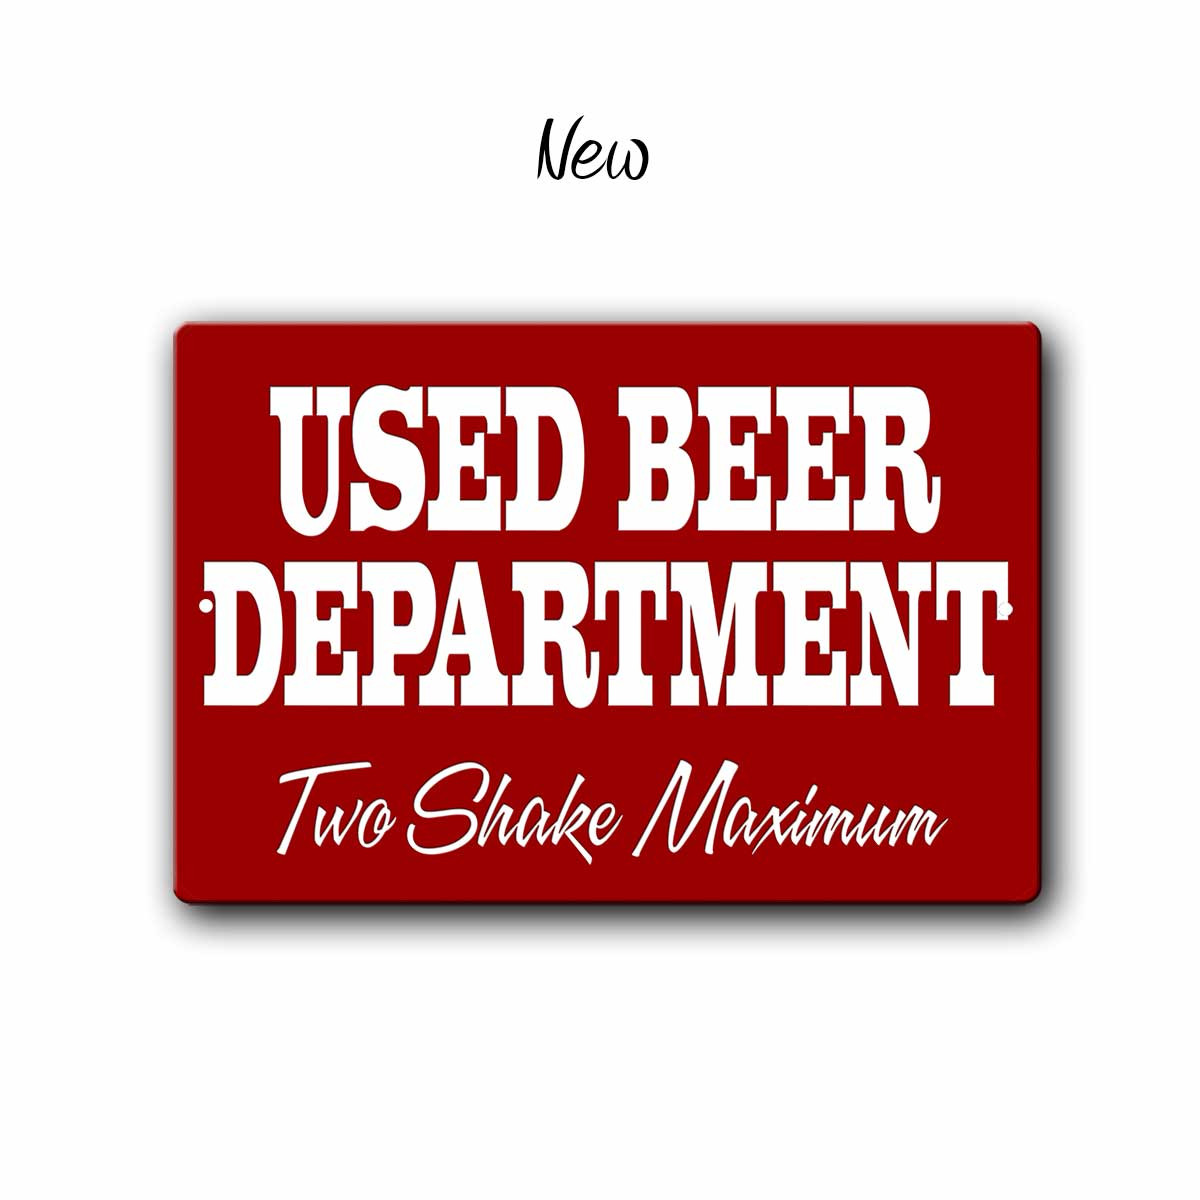 Man Cave Bathroom Colors: Used Beer Department Man Cave Sign For The Bathroom